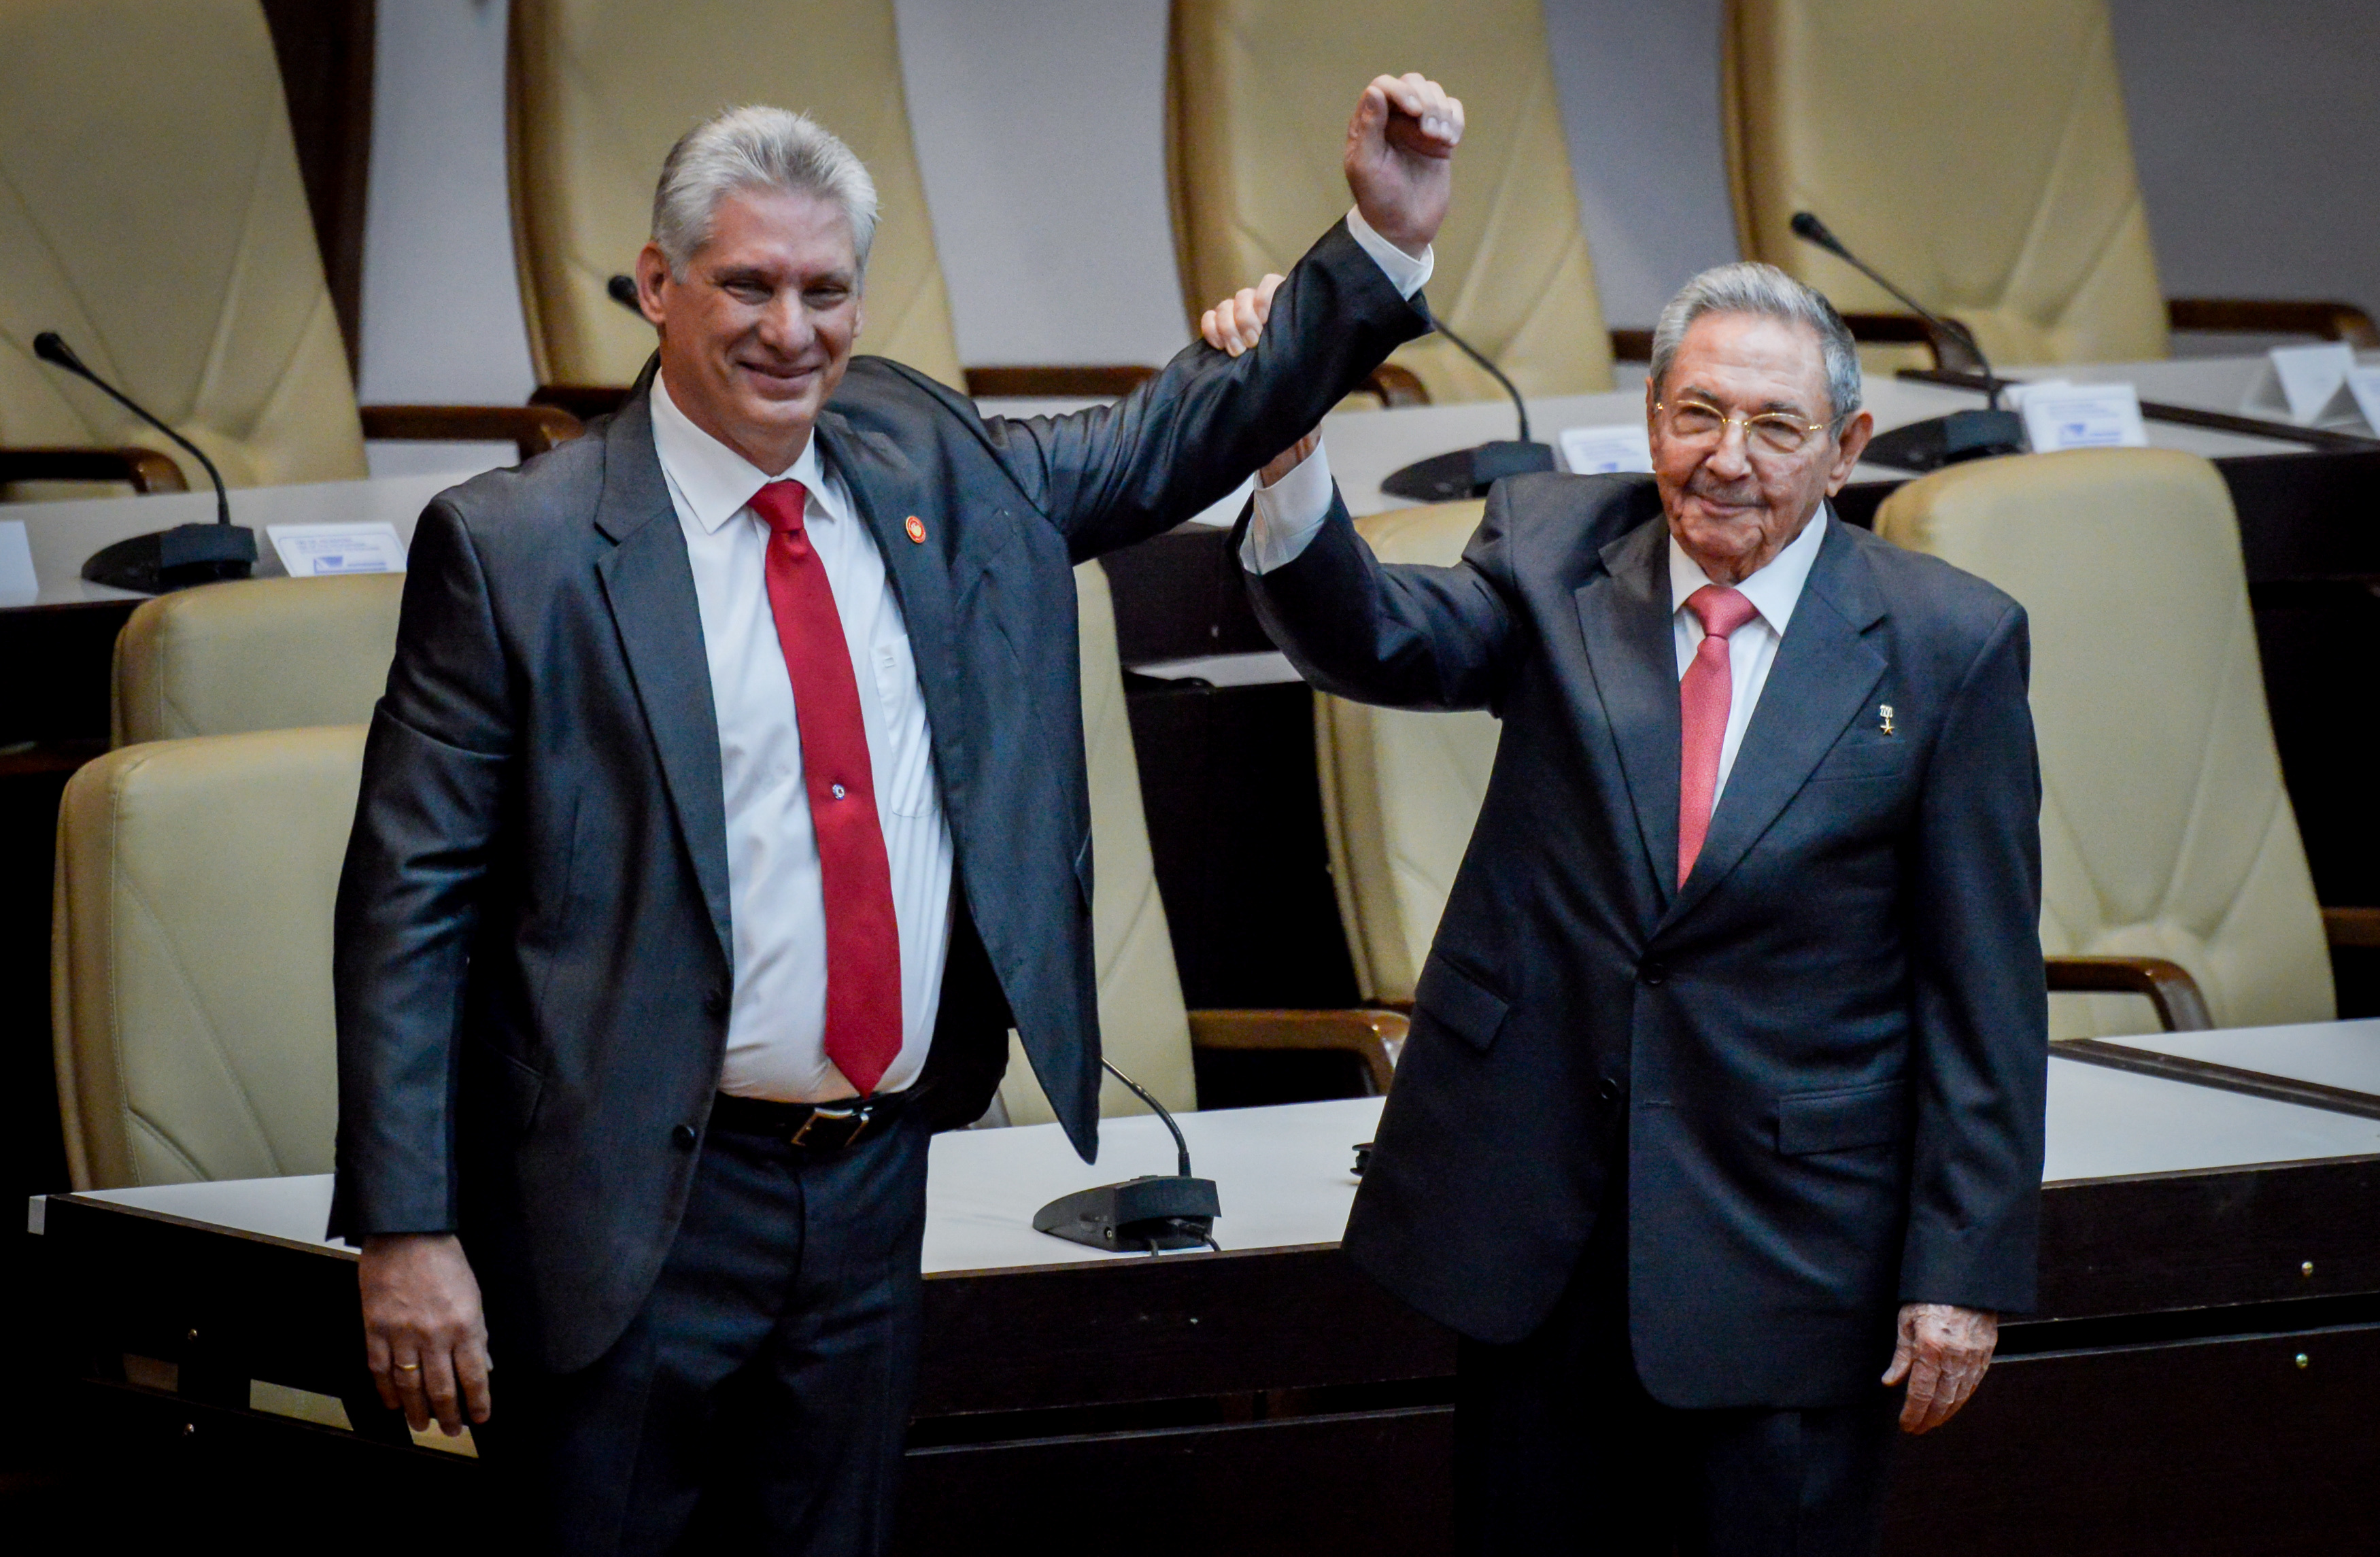 Newly elected Cuban President Miguel Diaz-Canel (L) reacts as former Cuban President Raul Castro raises his hand during the National Assembly in Havana, Cuba, April 19, 2018. REUTERS/Adalberto Roque/Pool via Reuters